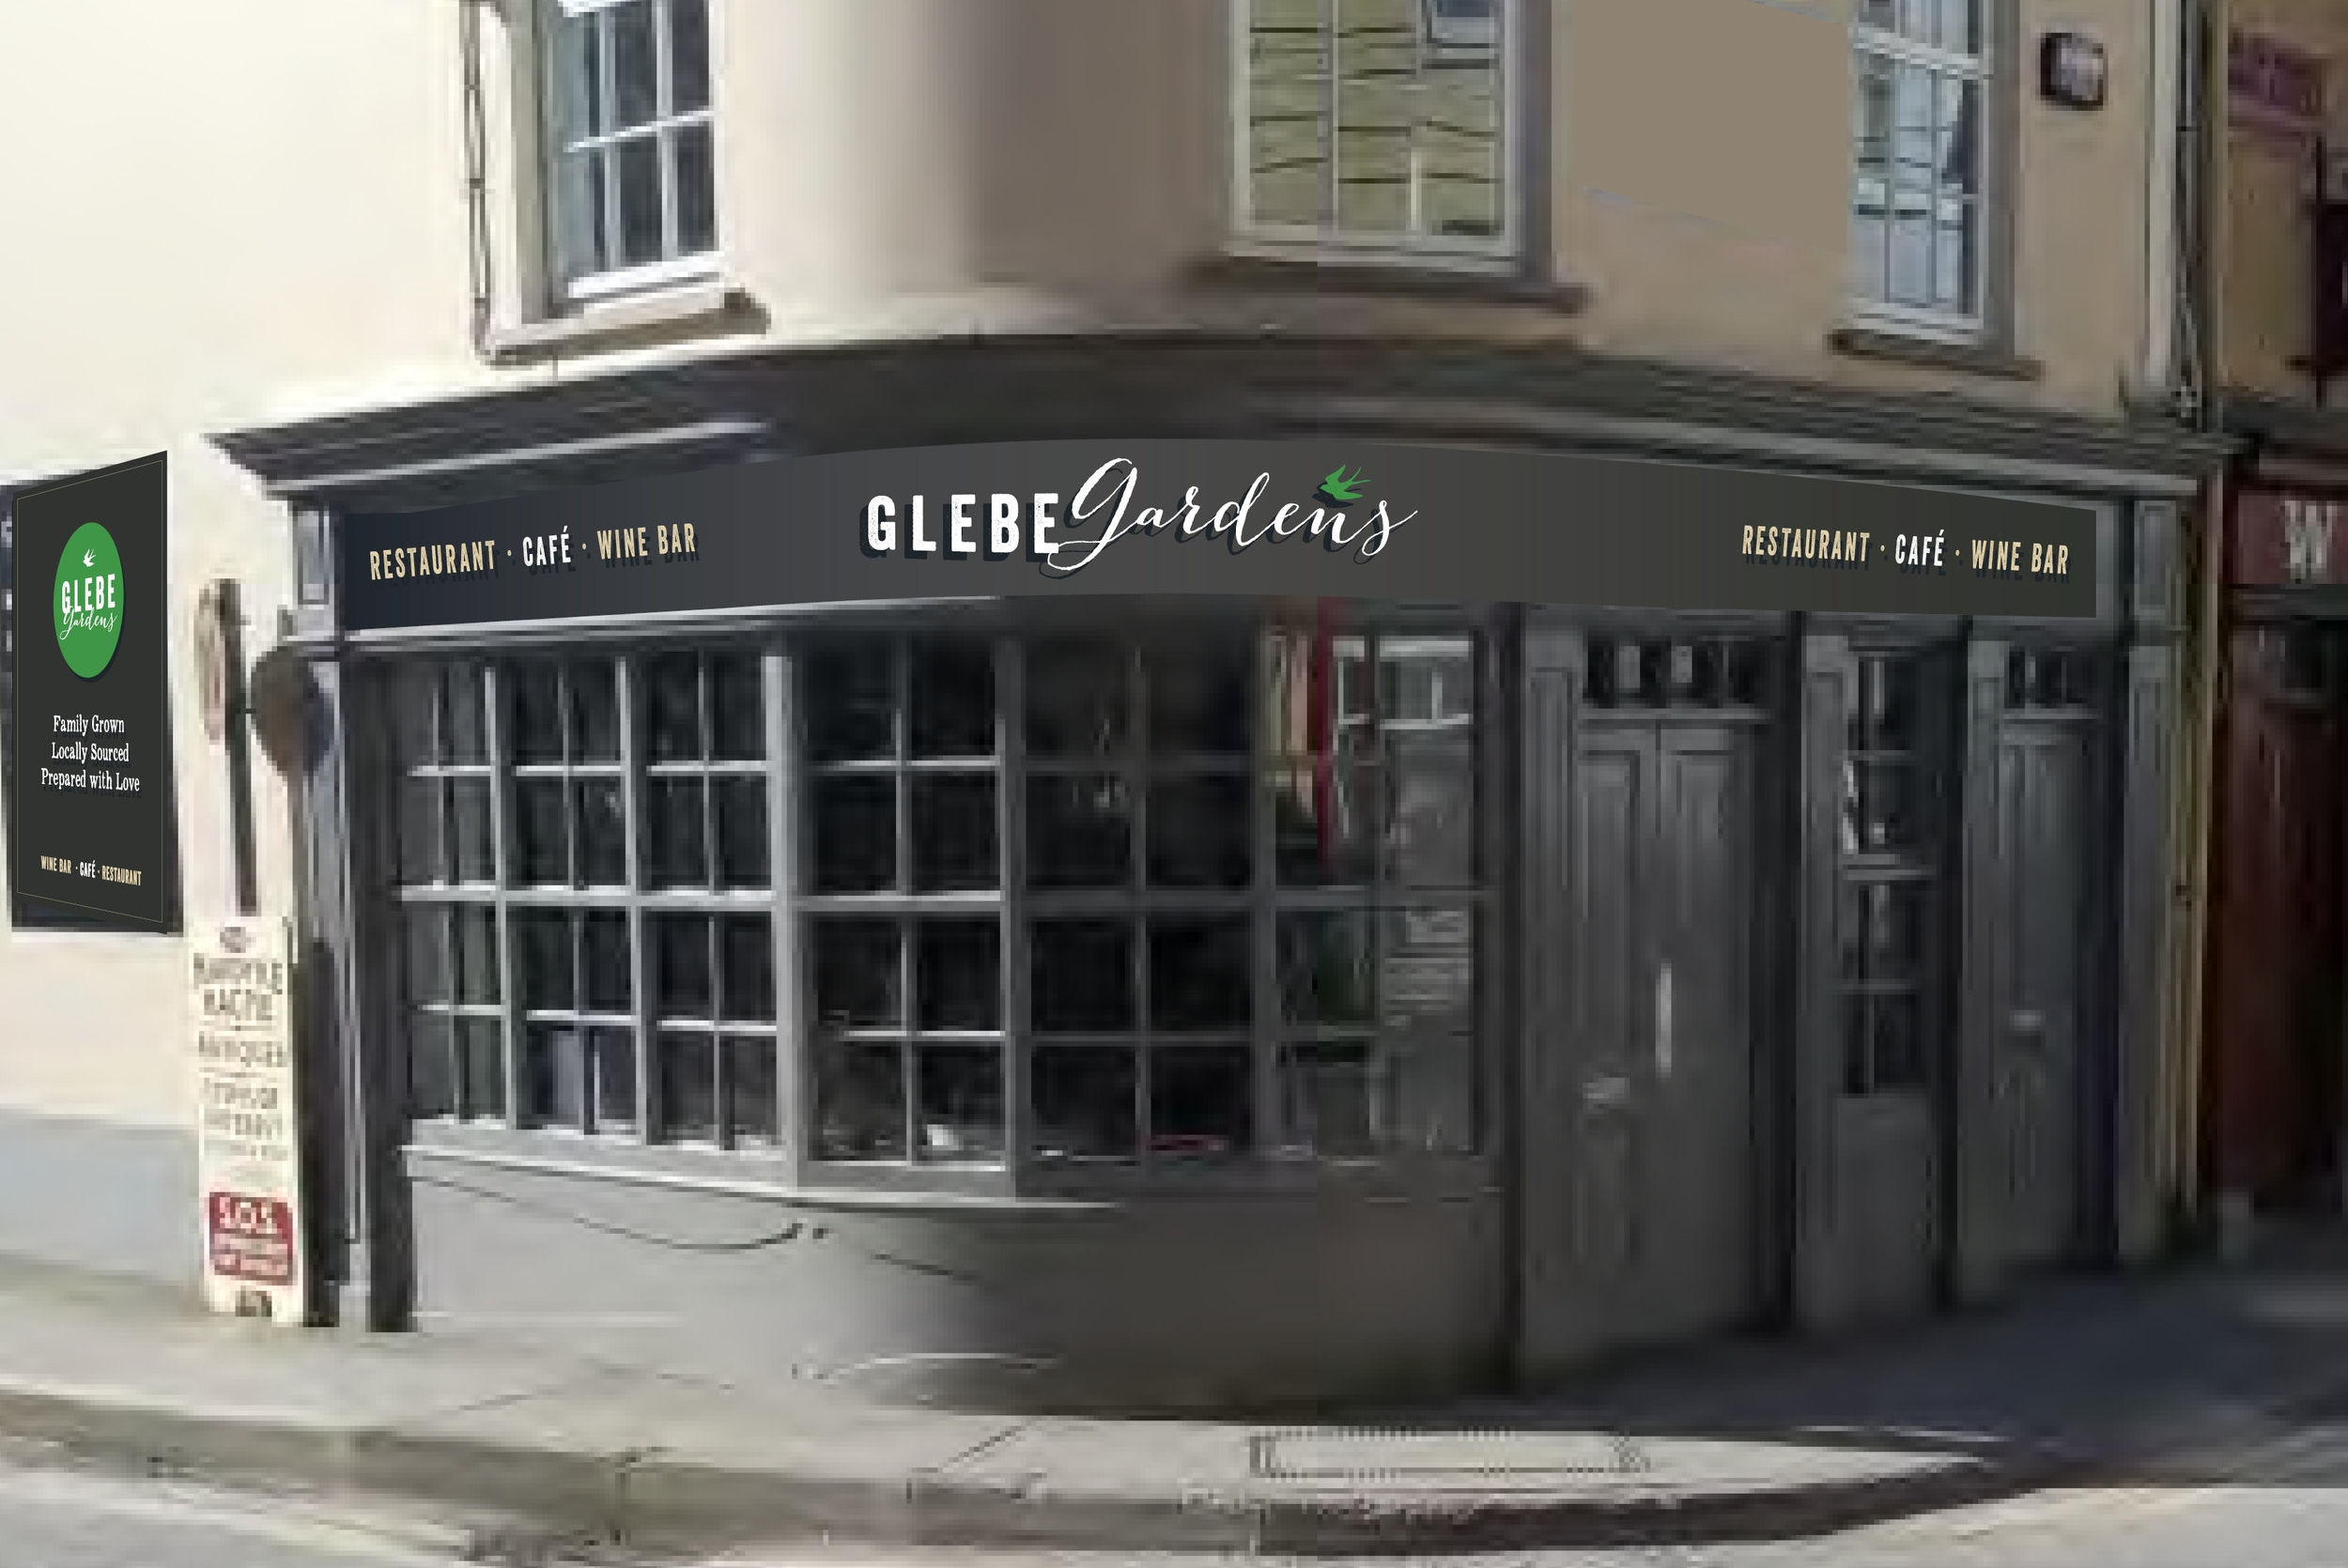 Glebe Gardens Cafe, Skibbereen - Glebe Gardens Cafe in Skibbereen is a new venture for the Perry sister. The new cafe will bring much of what has inspired the Glebe in Baltimore to this new setting in the near by town of Skibbereen.